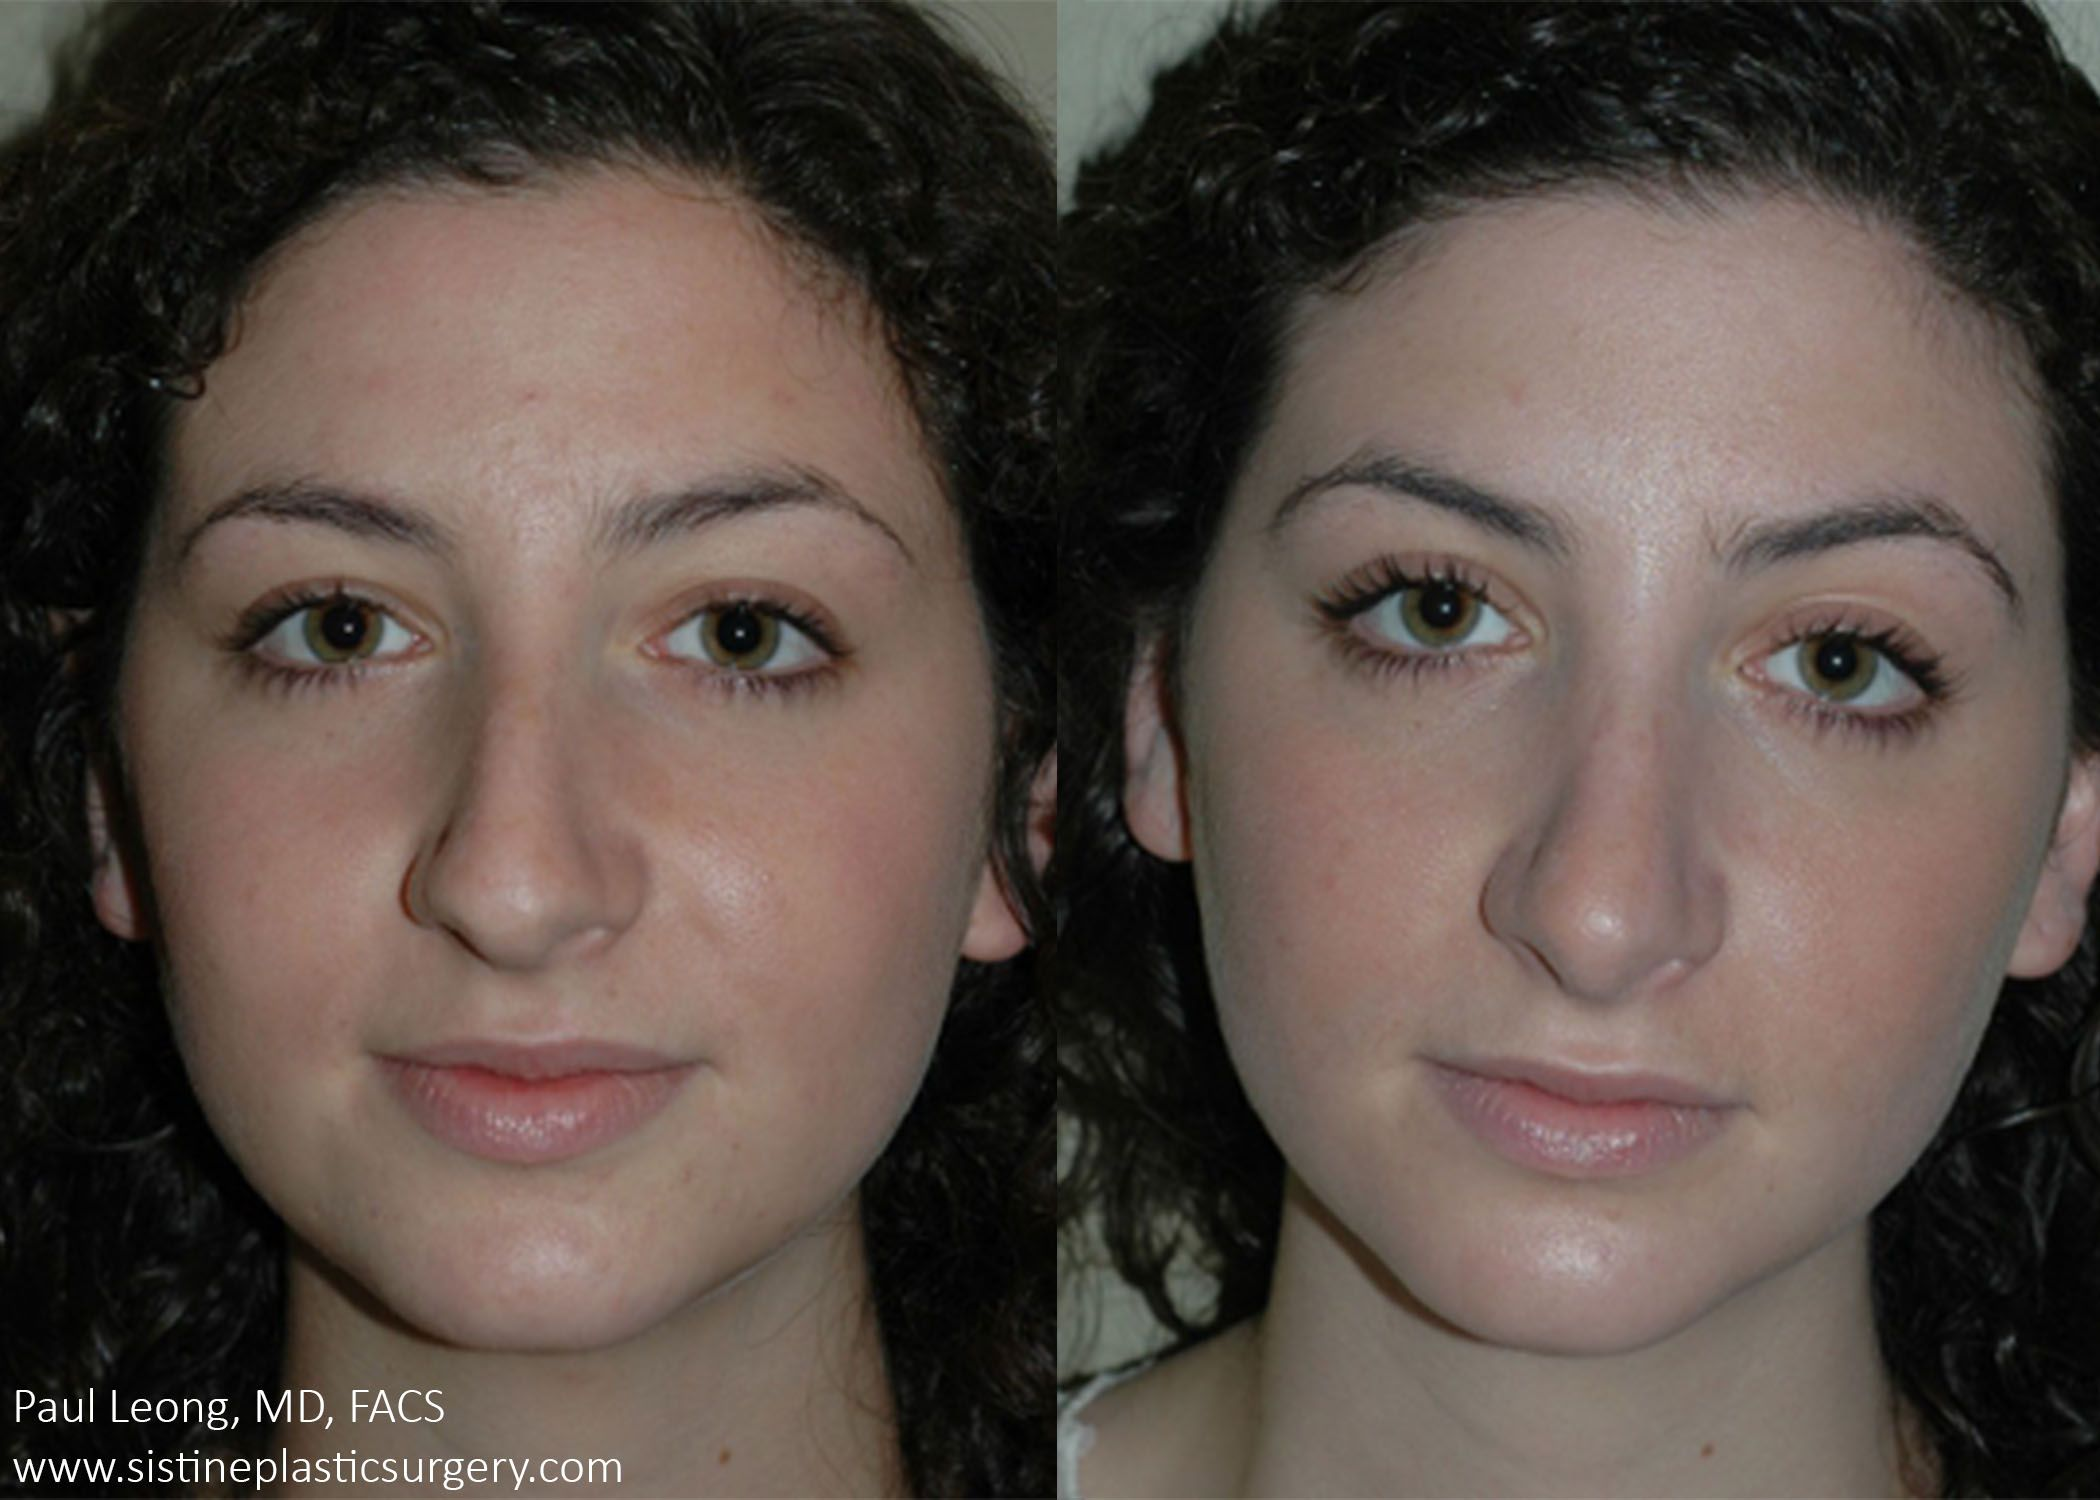 Before/After Rhinoplasty Dr. Leong Sistine Plastic